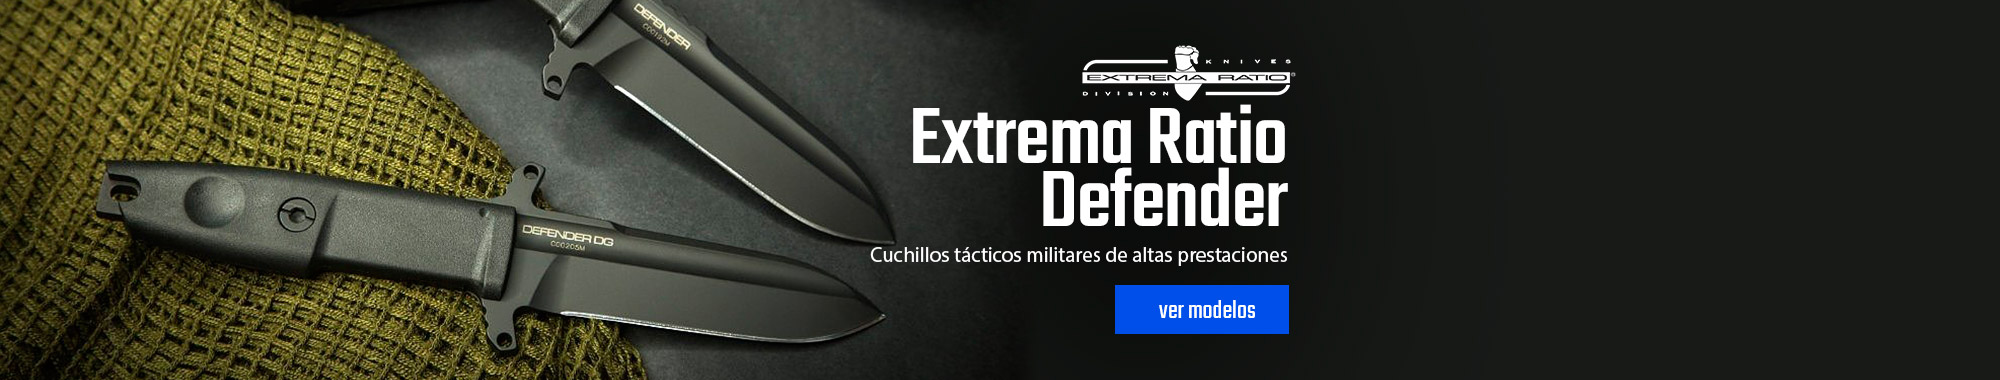 Extrema Ratio Defender